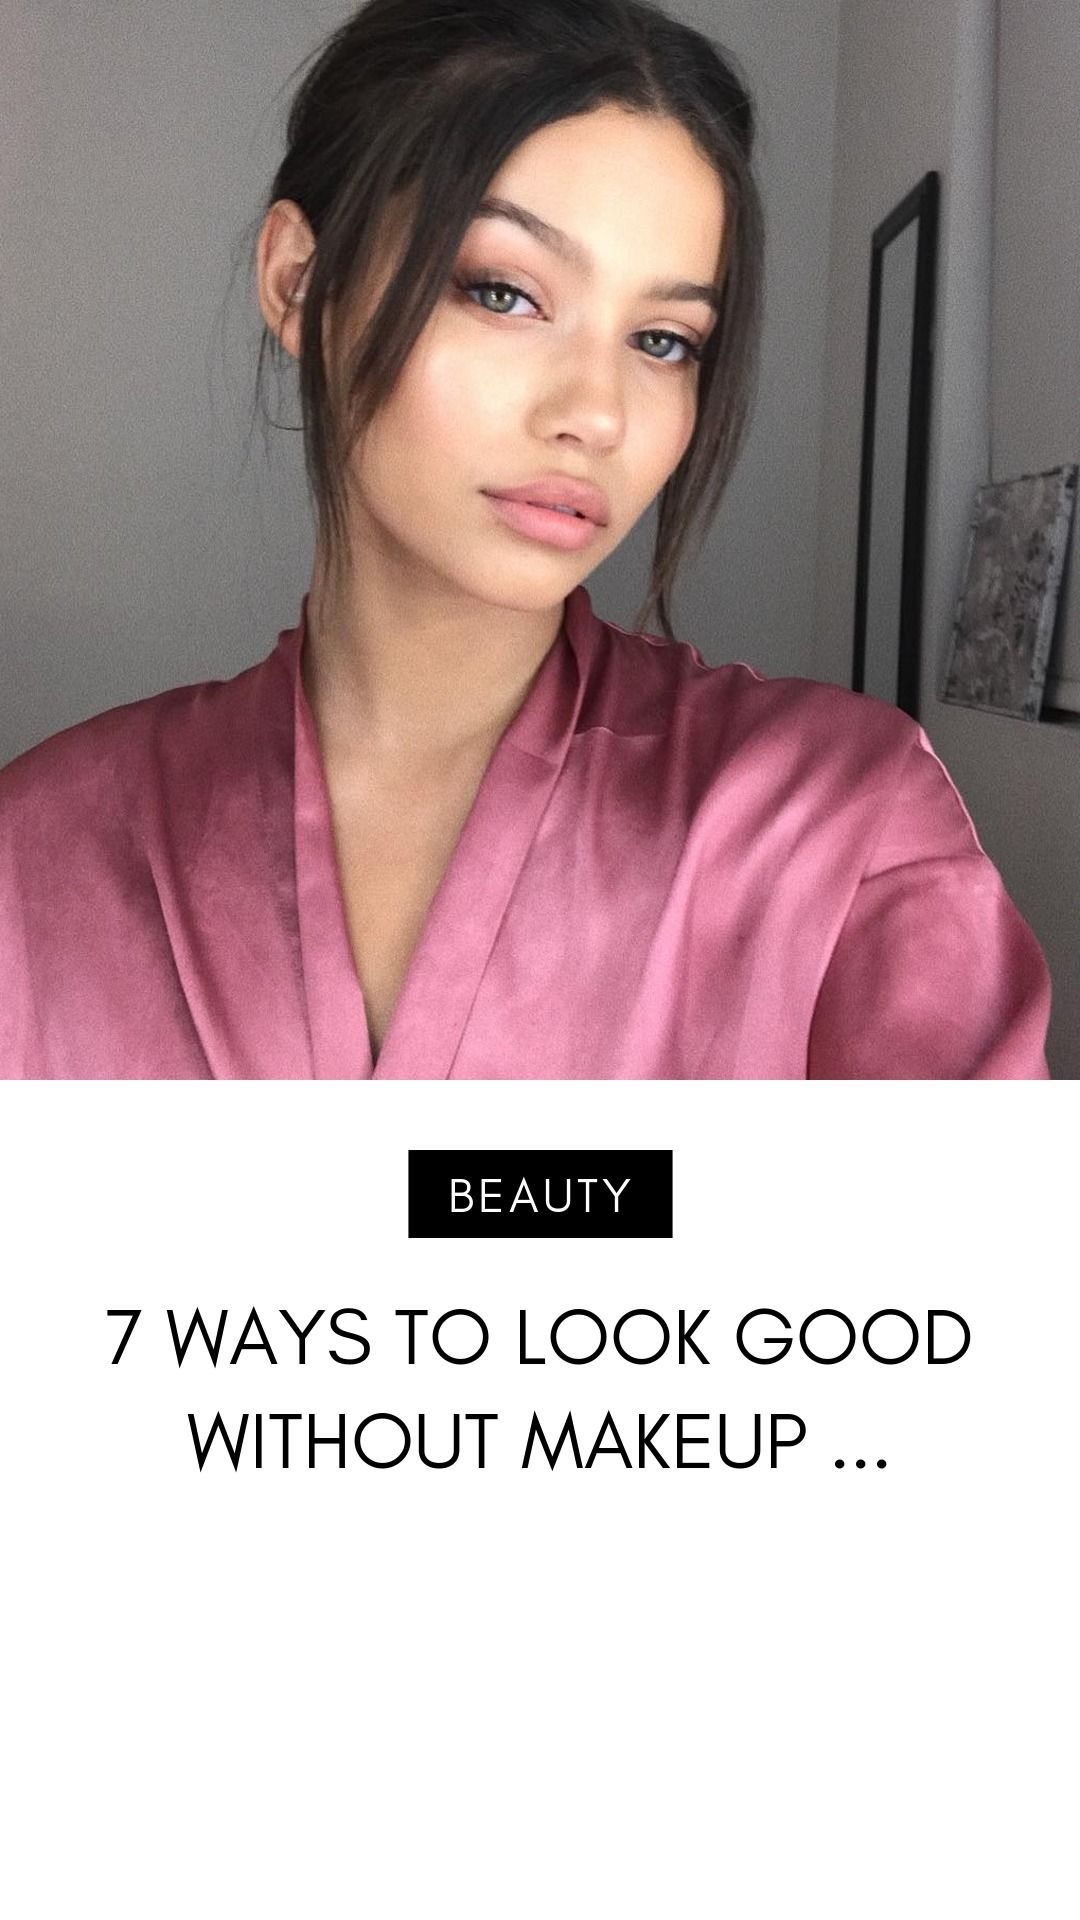 7 Ways to Look 👁👁 Good 😁 without 🚫 Makeup 💄 Reel